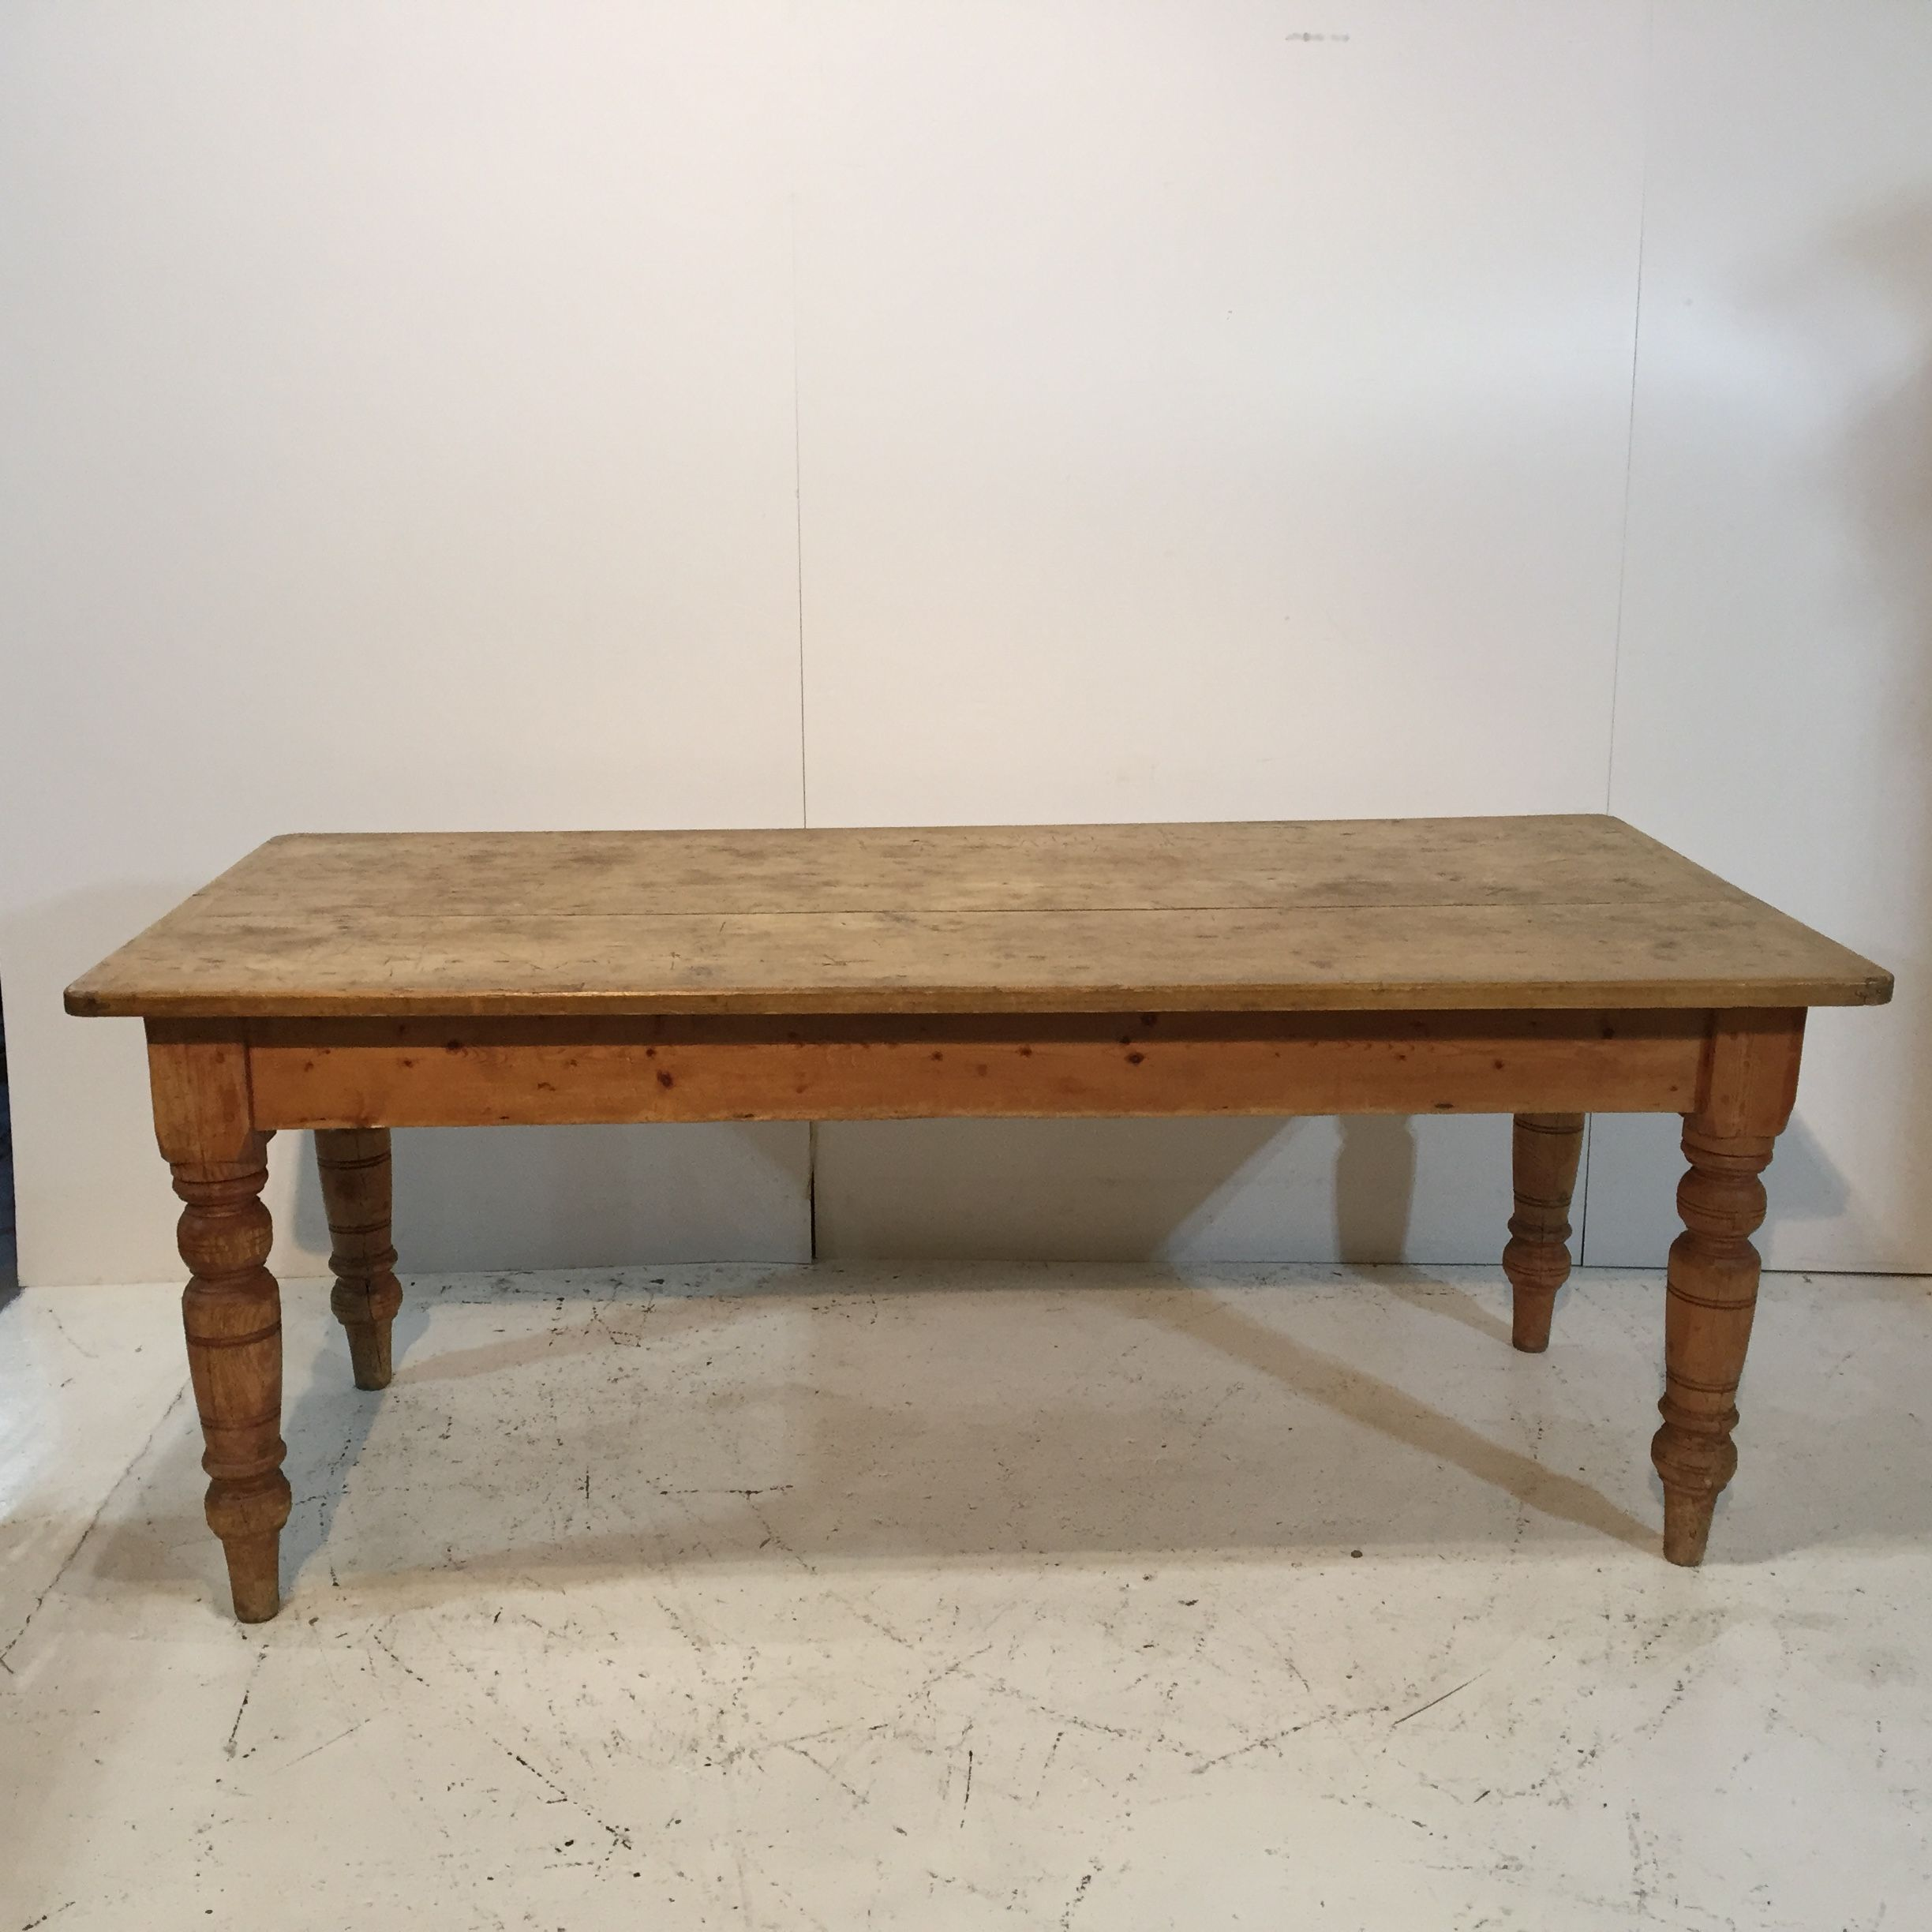 Very Old Rustic Farmhouse Kitchen Table c.1880